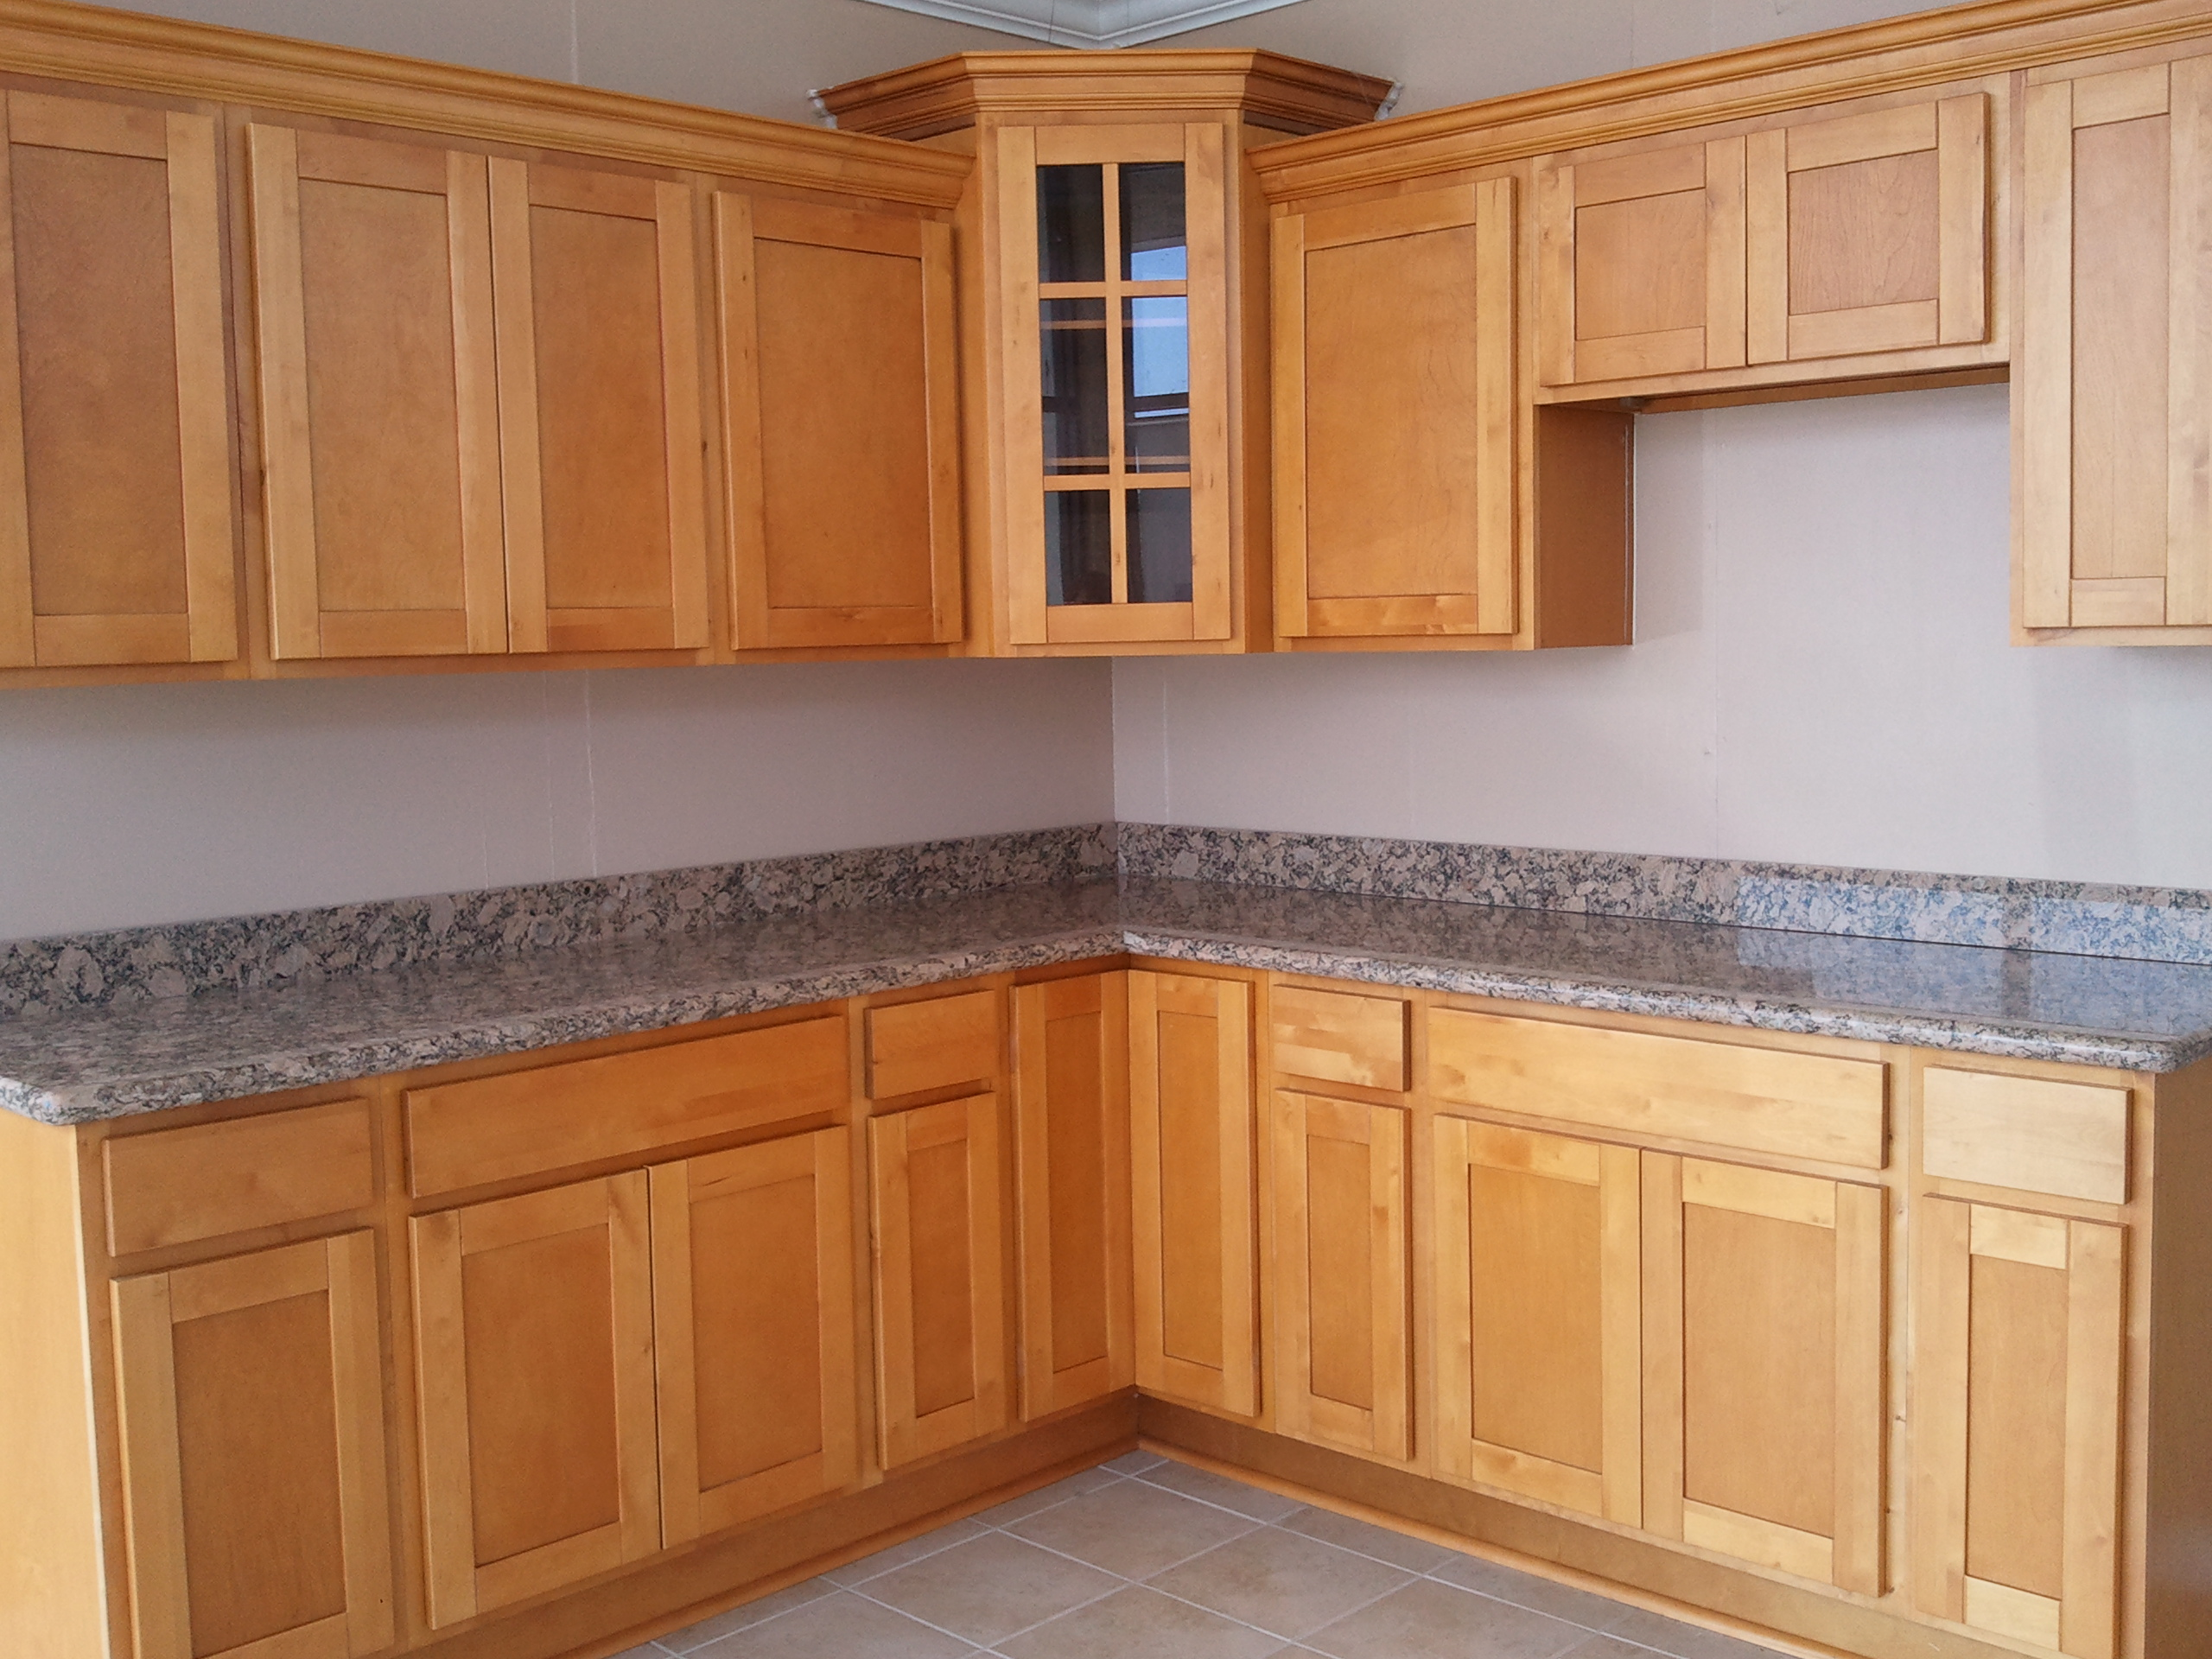 Discount kitchen cabinets sacramento for Shaker kitchen cabinets wholesale